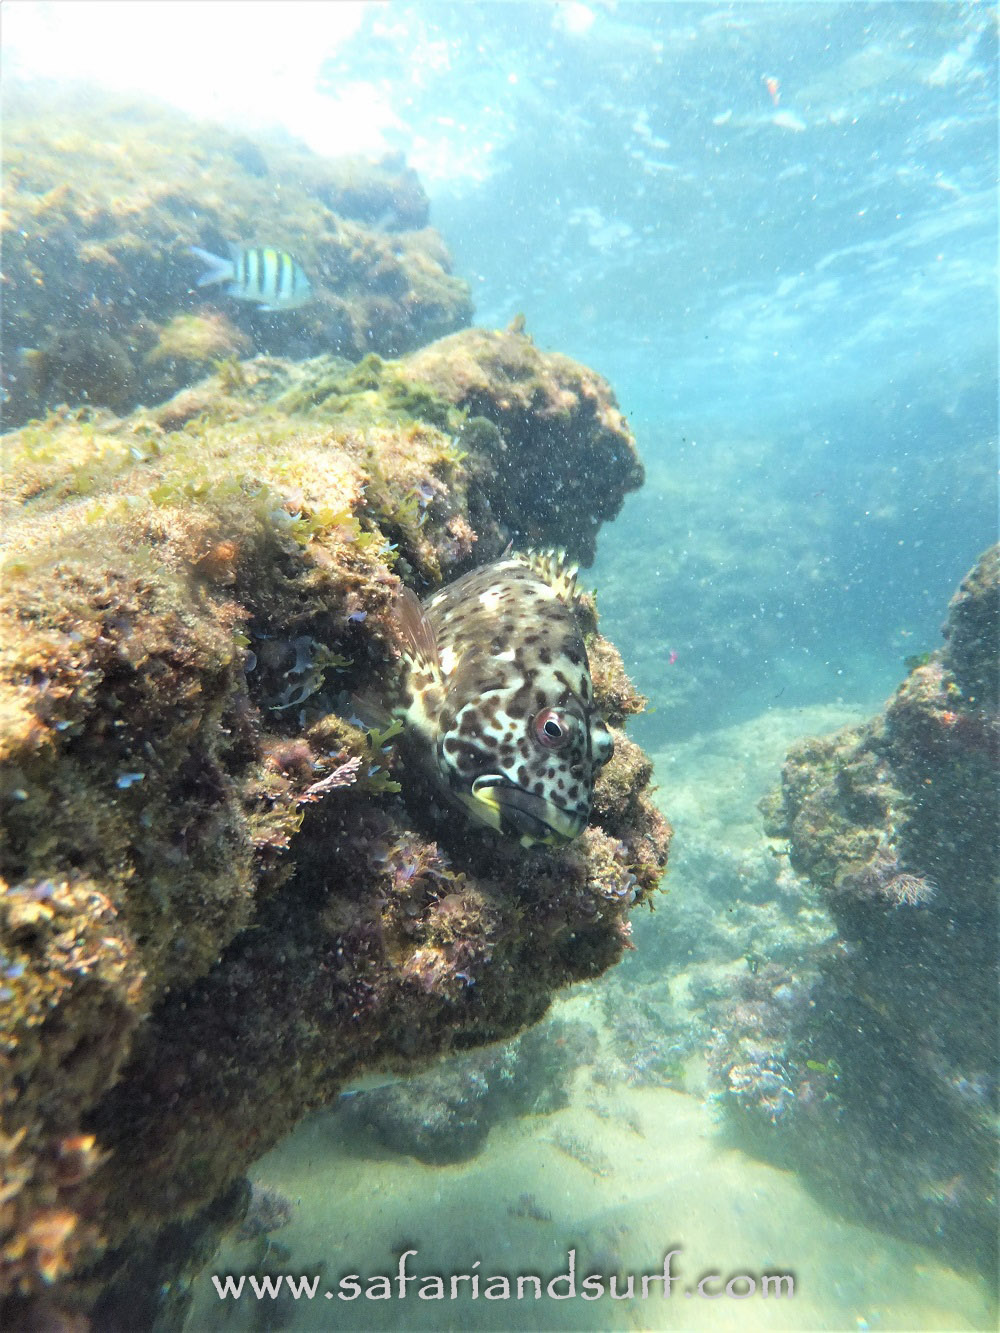 Cape Vidal, South Africa Snorkeling